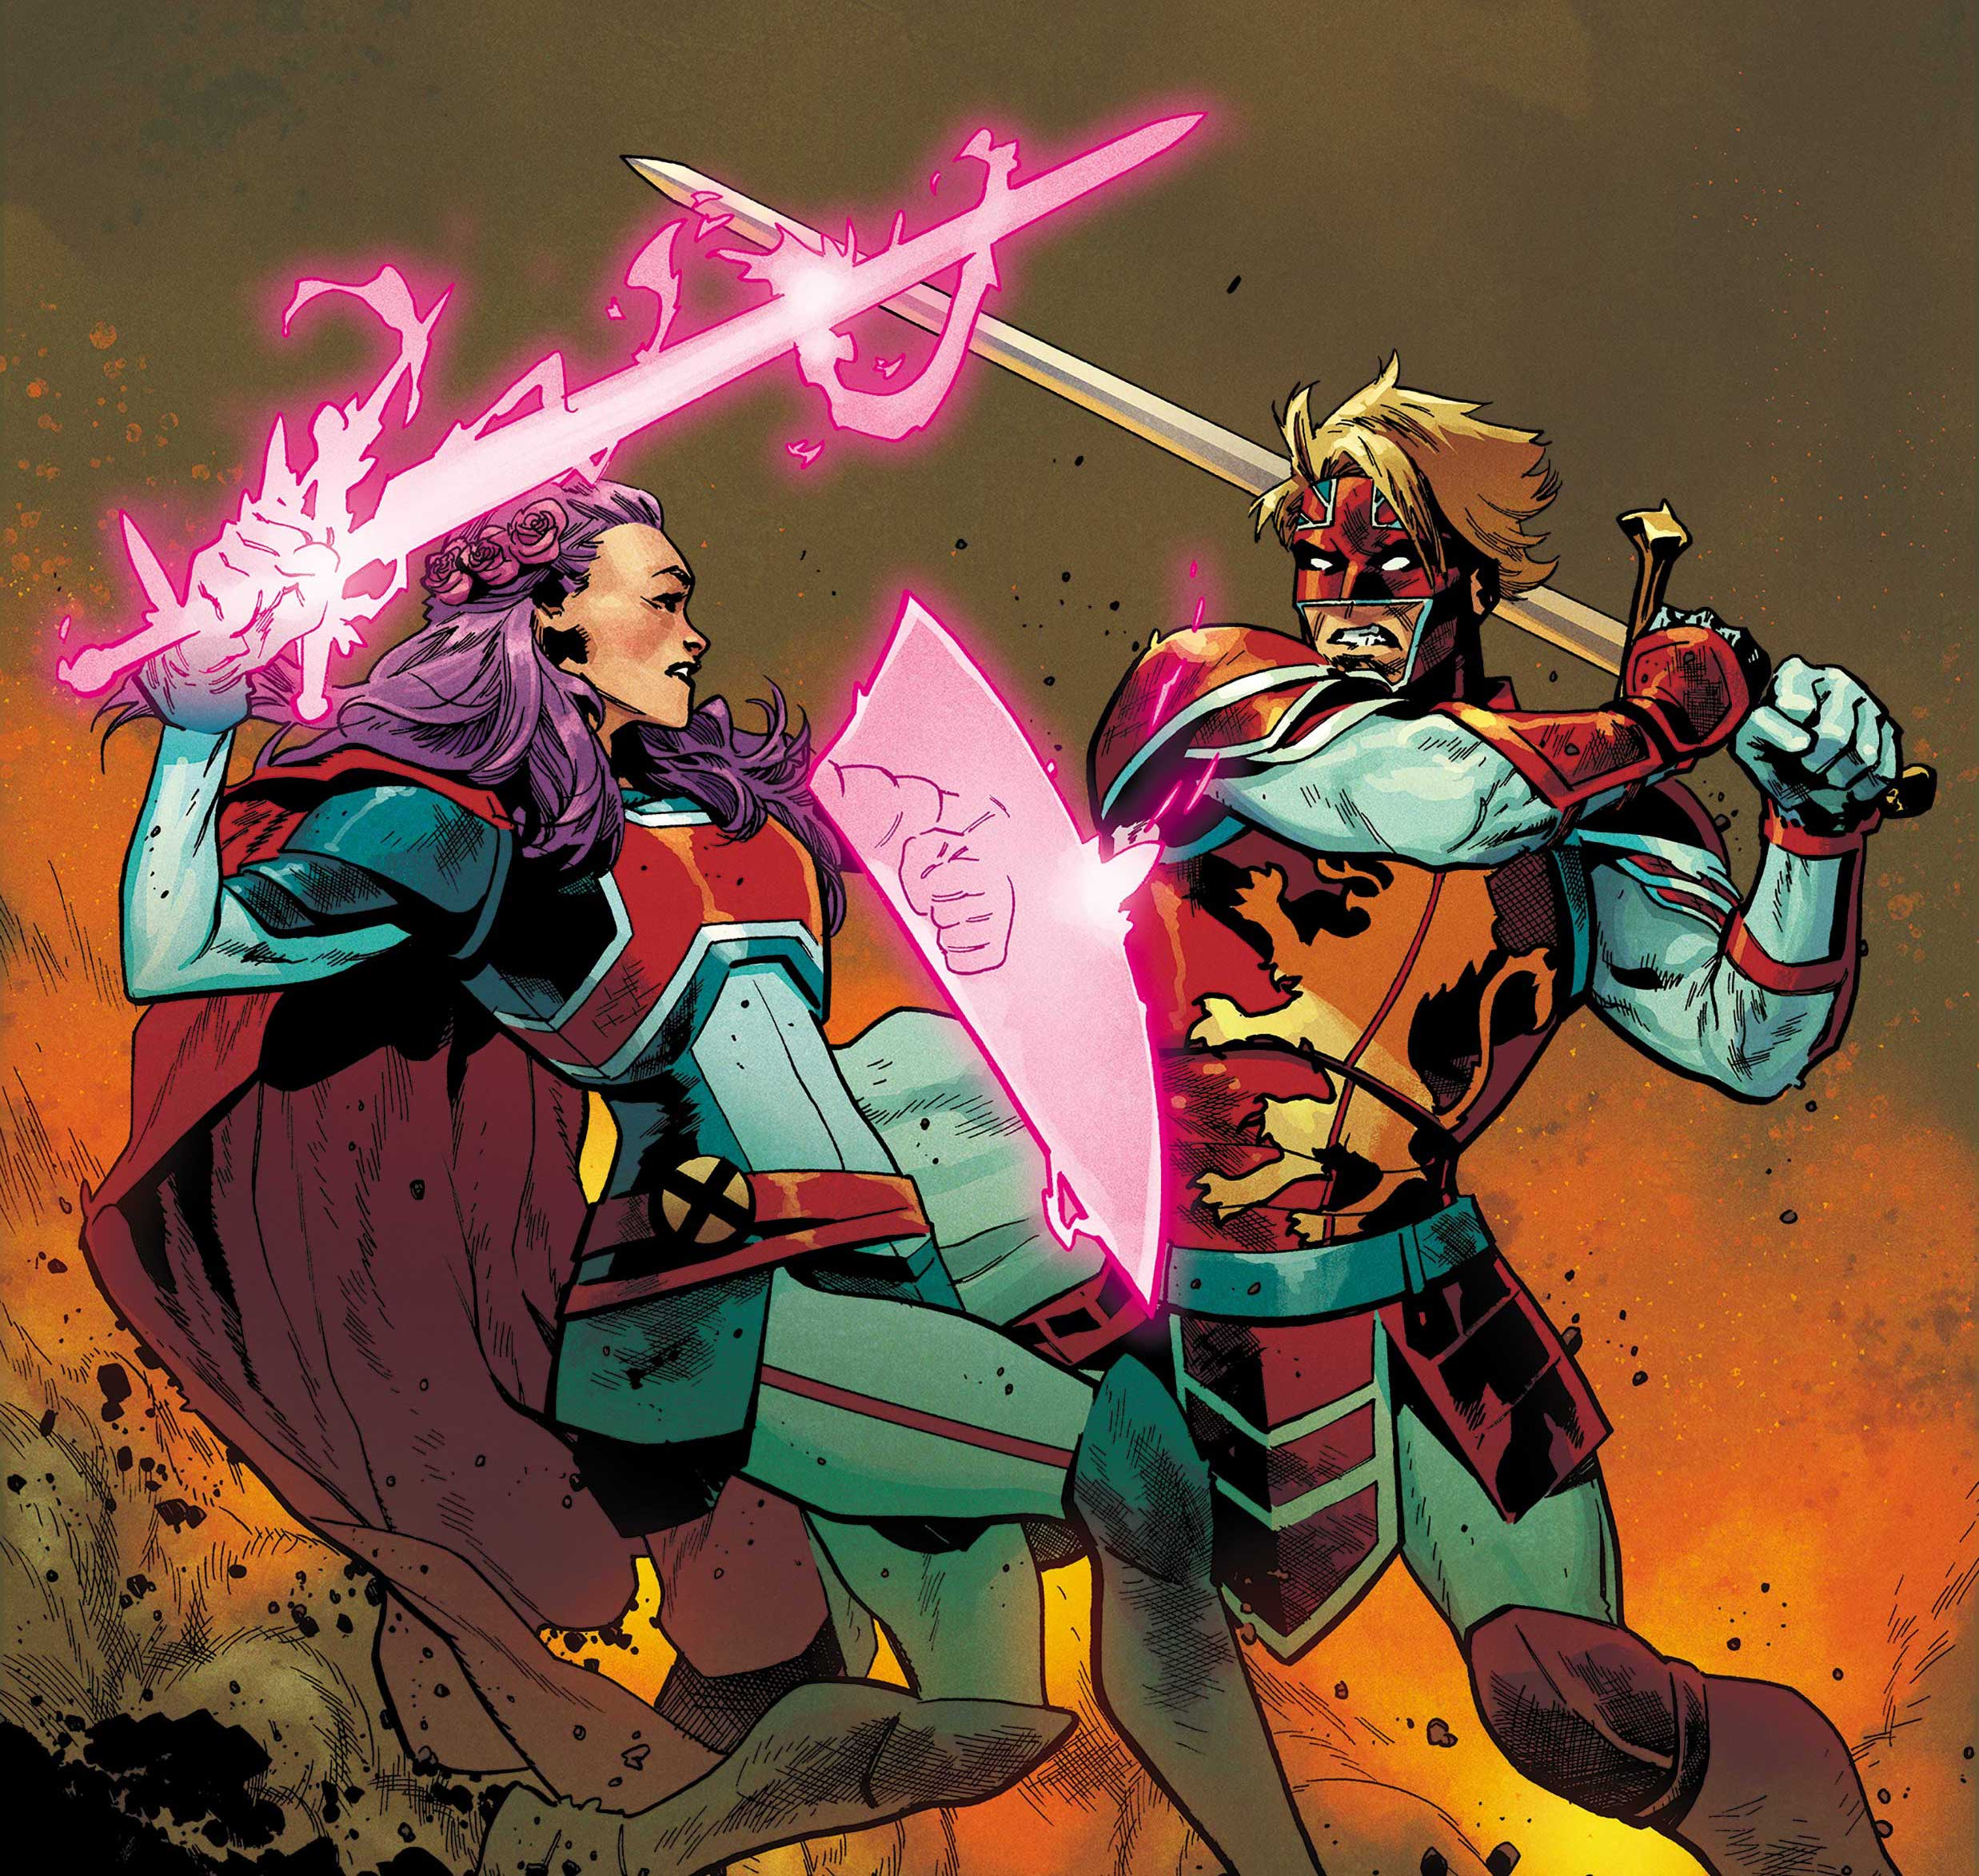 Marvel First Look: Excalibur #13 - X of Swords Chapter 9 revealed by Tini Howard